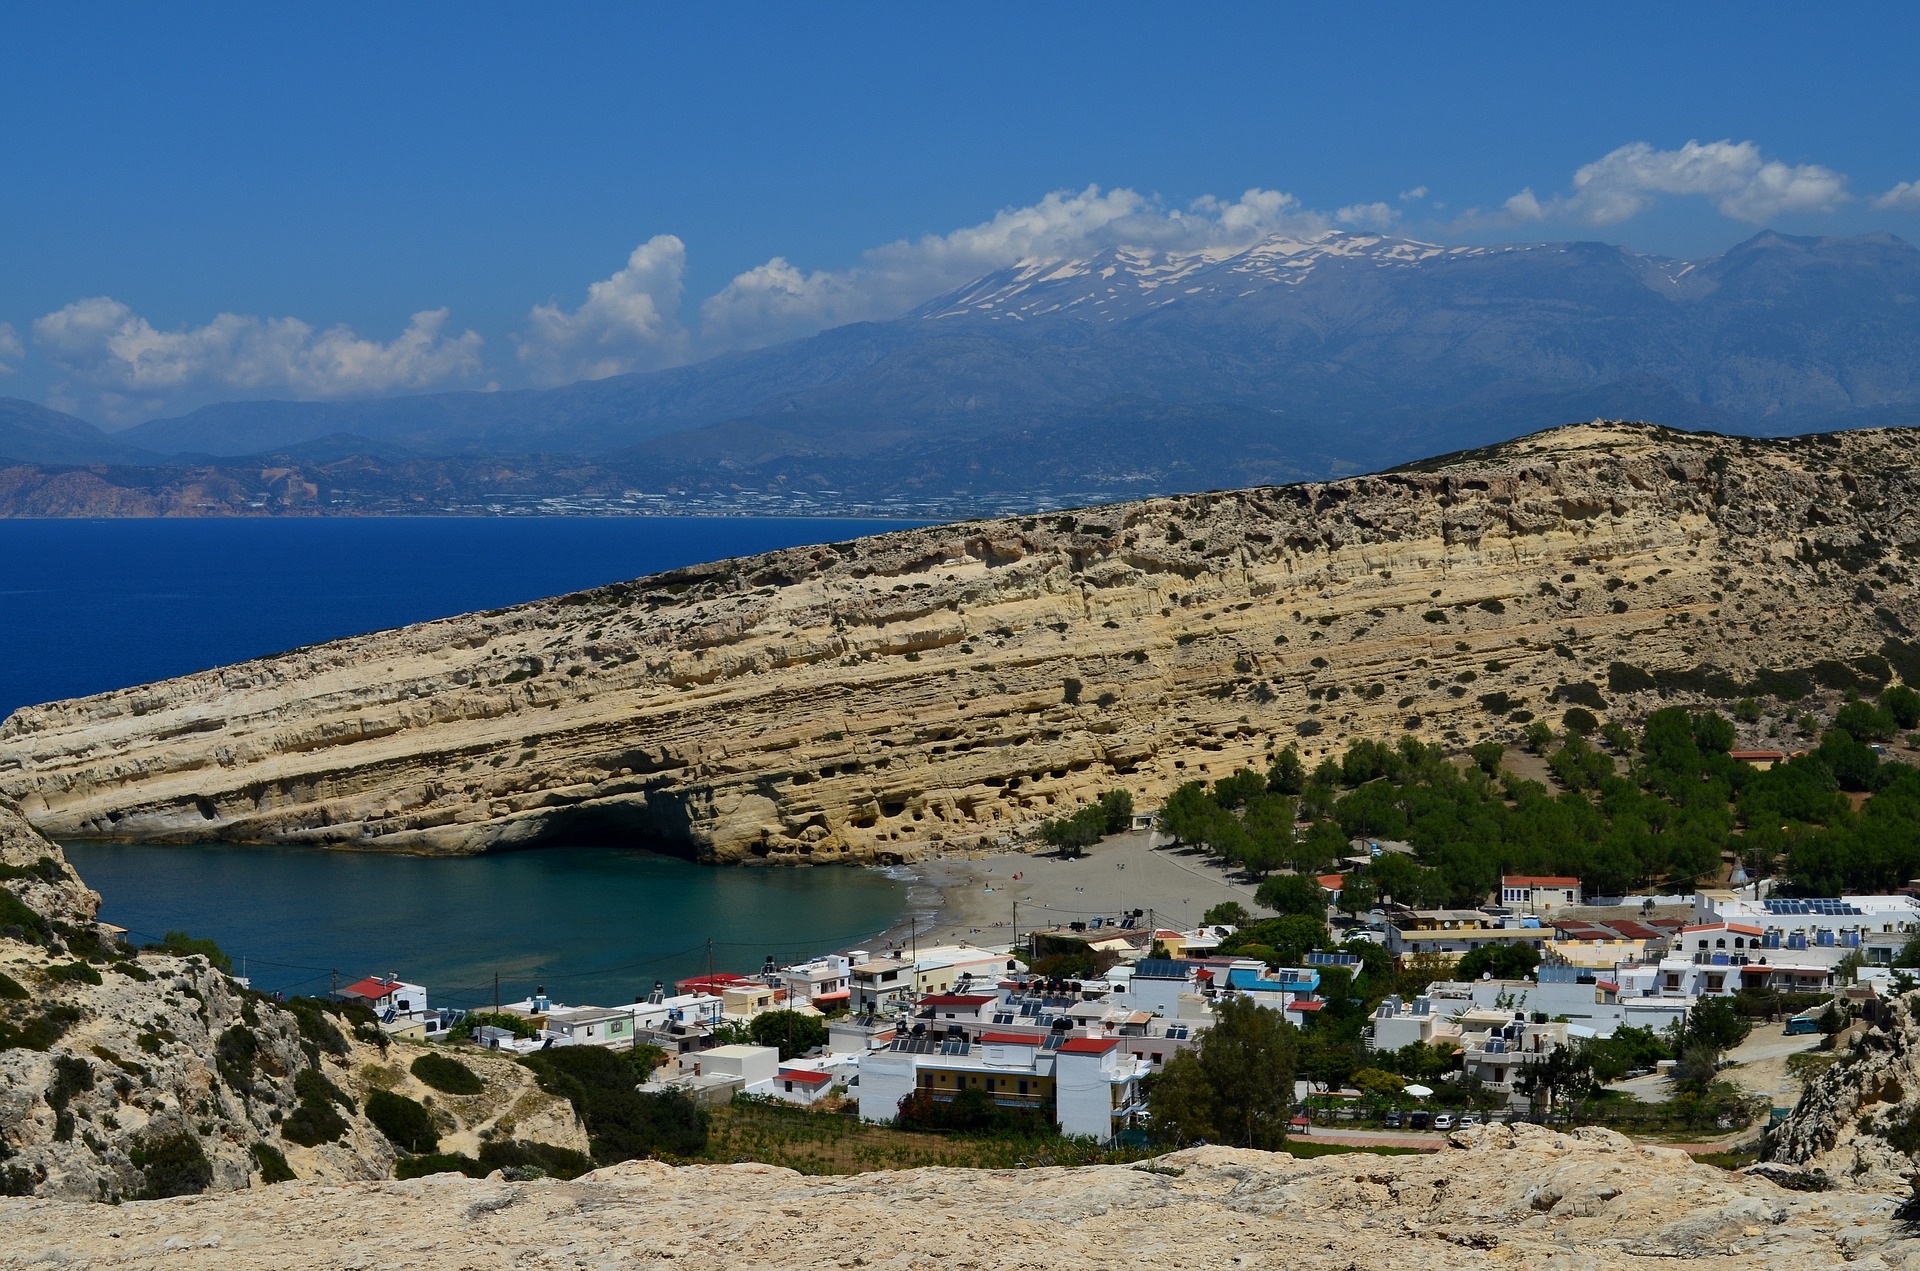 Travel to Matala Beach, Crete, Greece